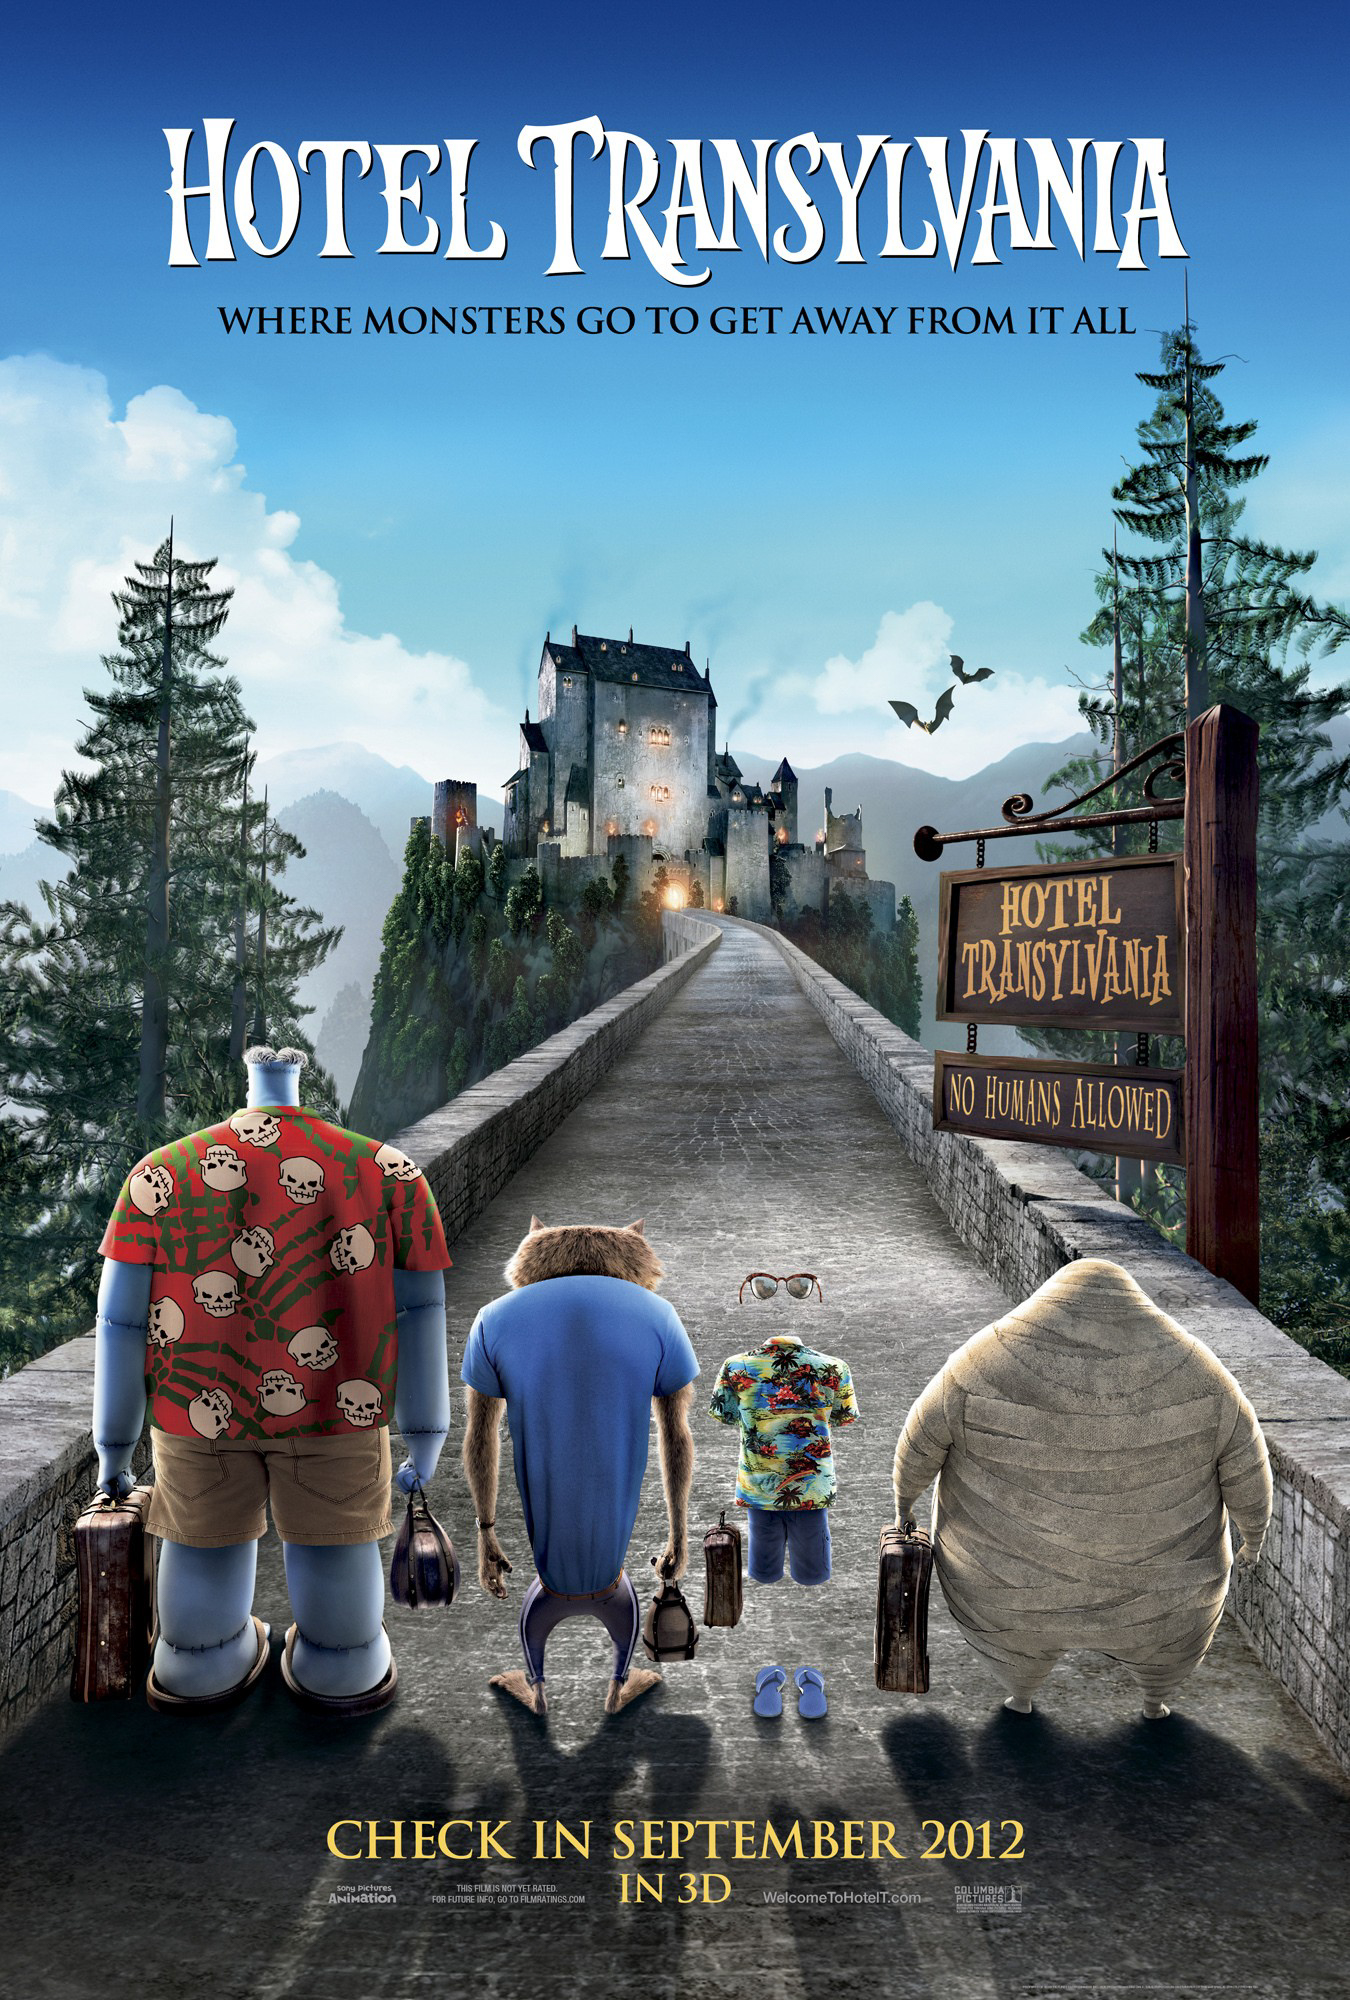 Hotel Transylvania - Senior Lighting Technical Director @ Sony Pictures Imageworks Vancouver